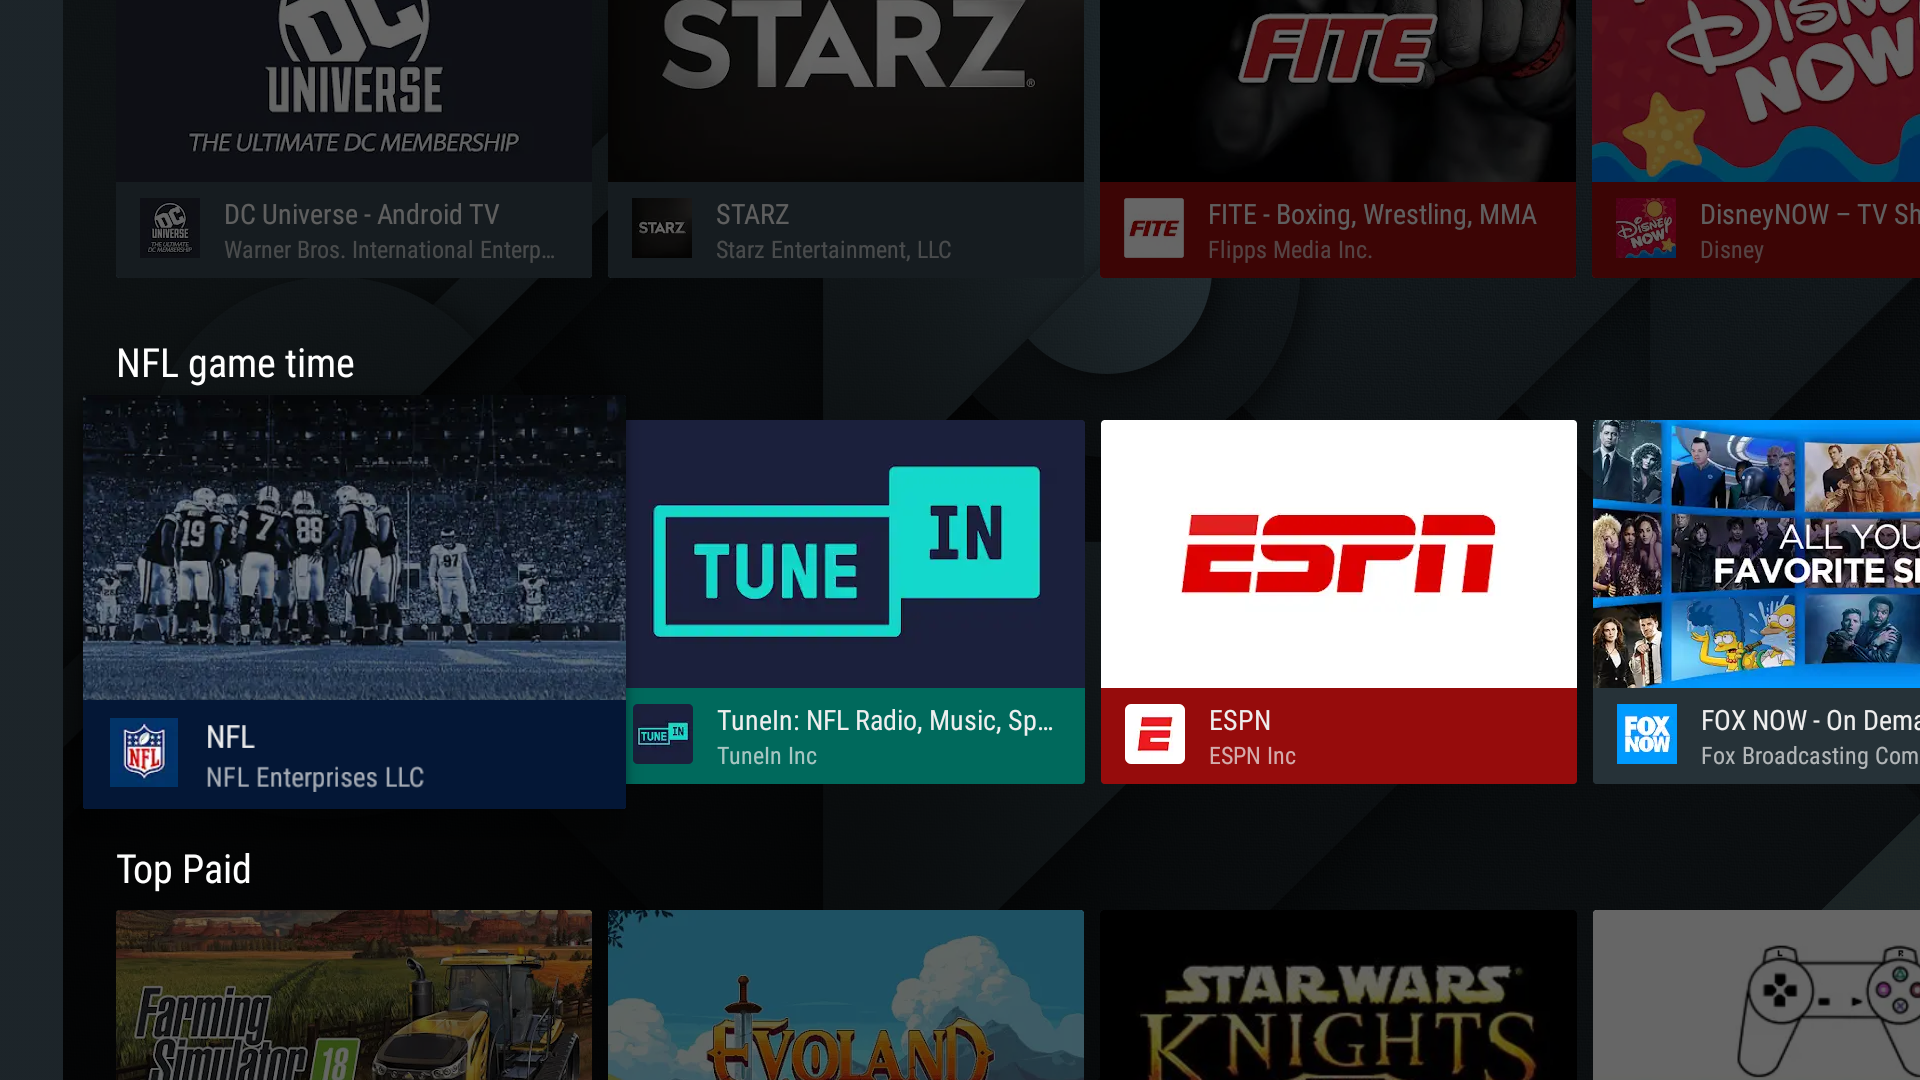 Channel Master Stream+ Android TV DVR review: So much wasted potential